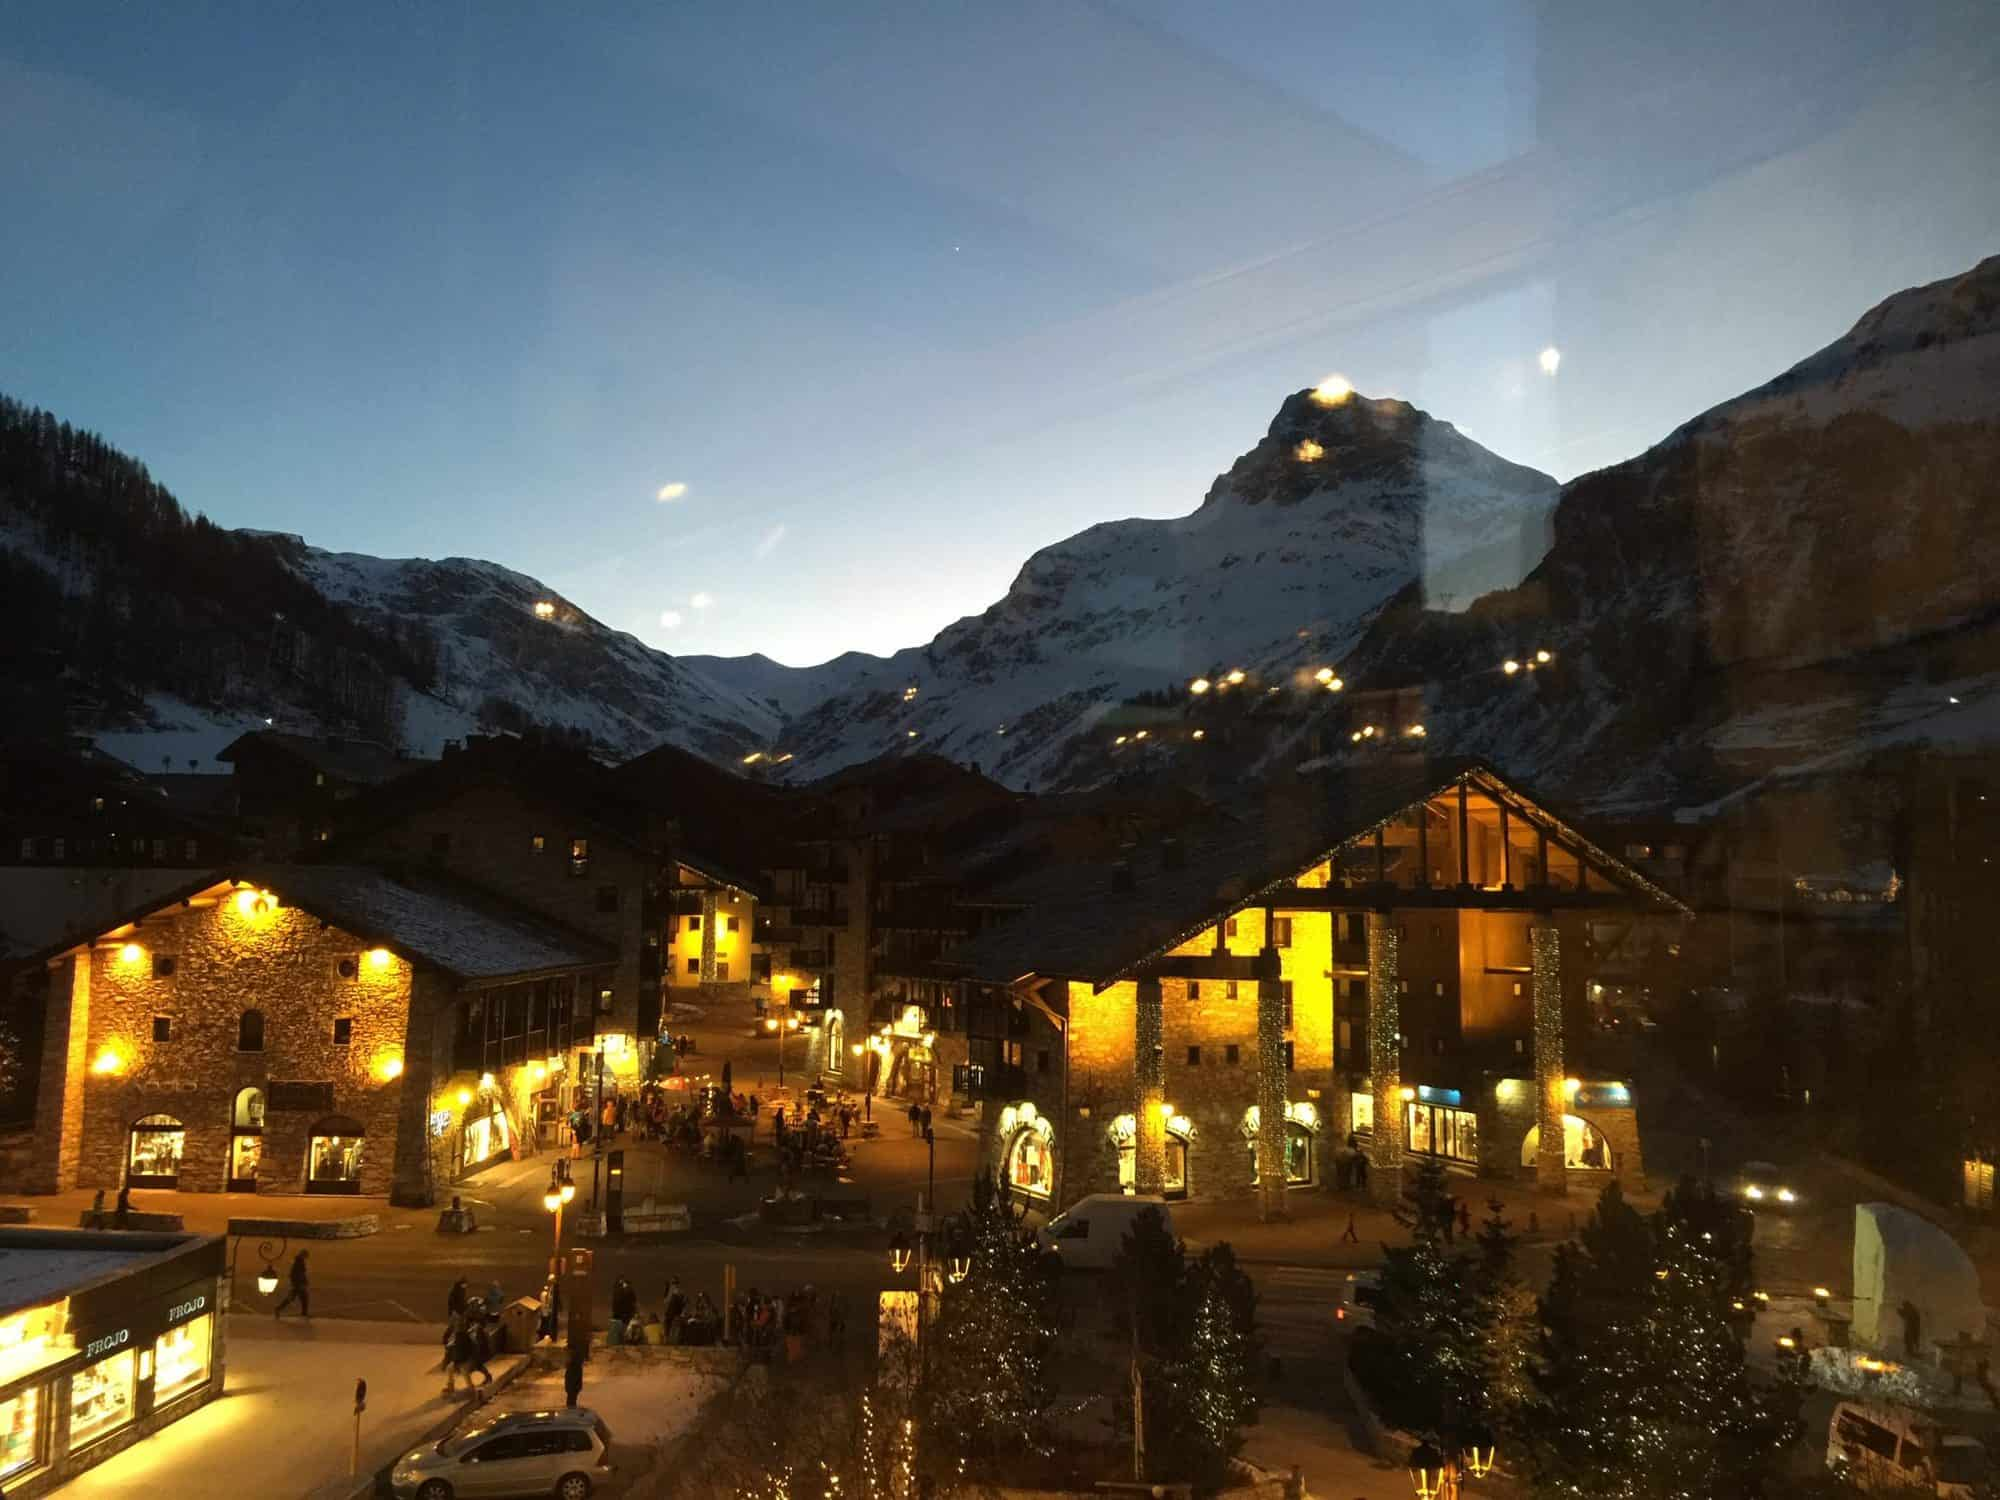 View of the olympic downhill slope from Mark Warner restaurant window in Val d 'Isere